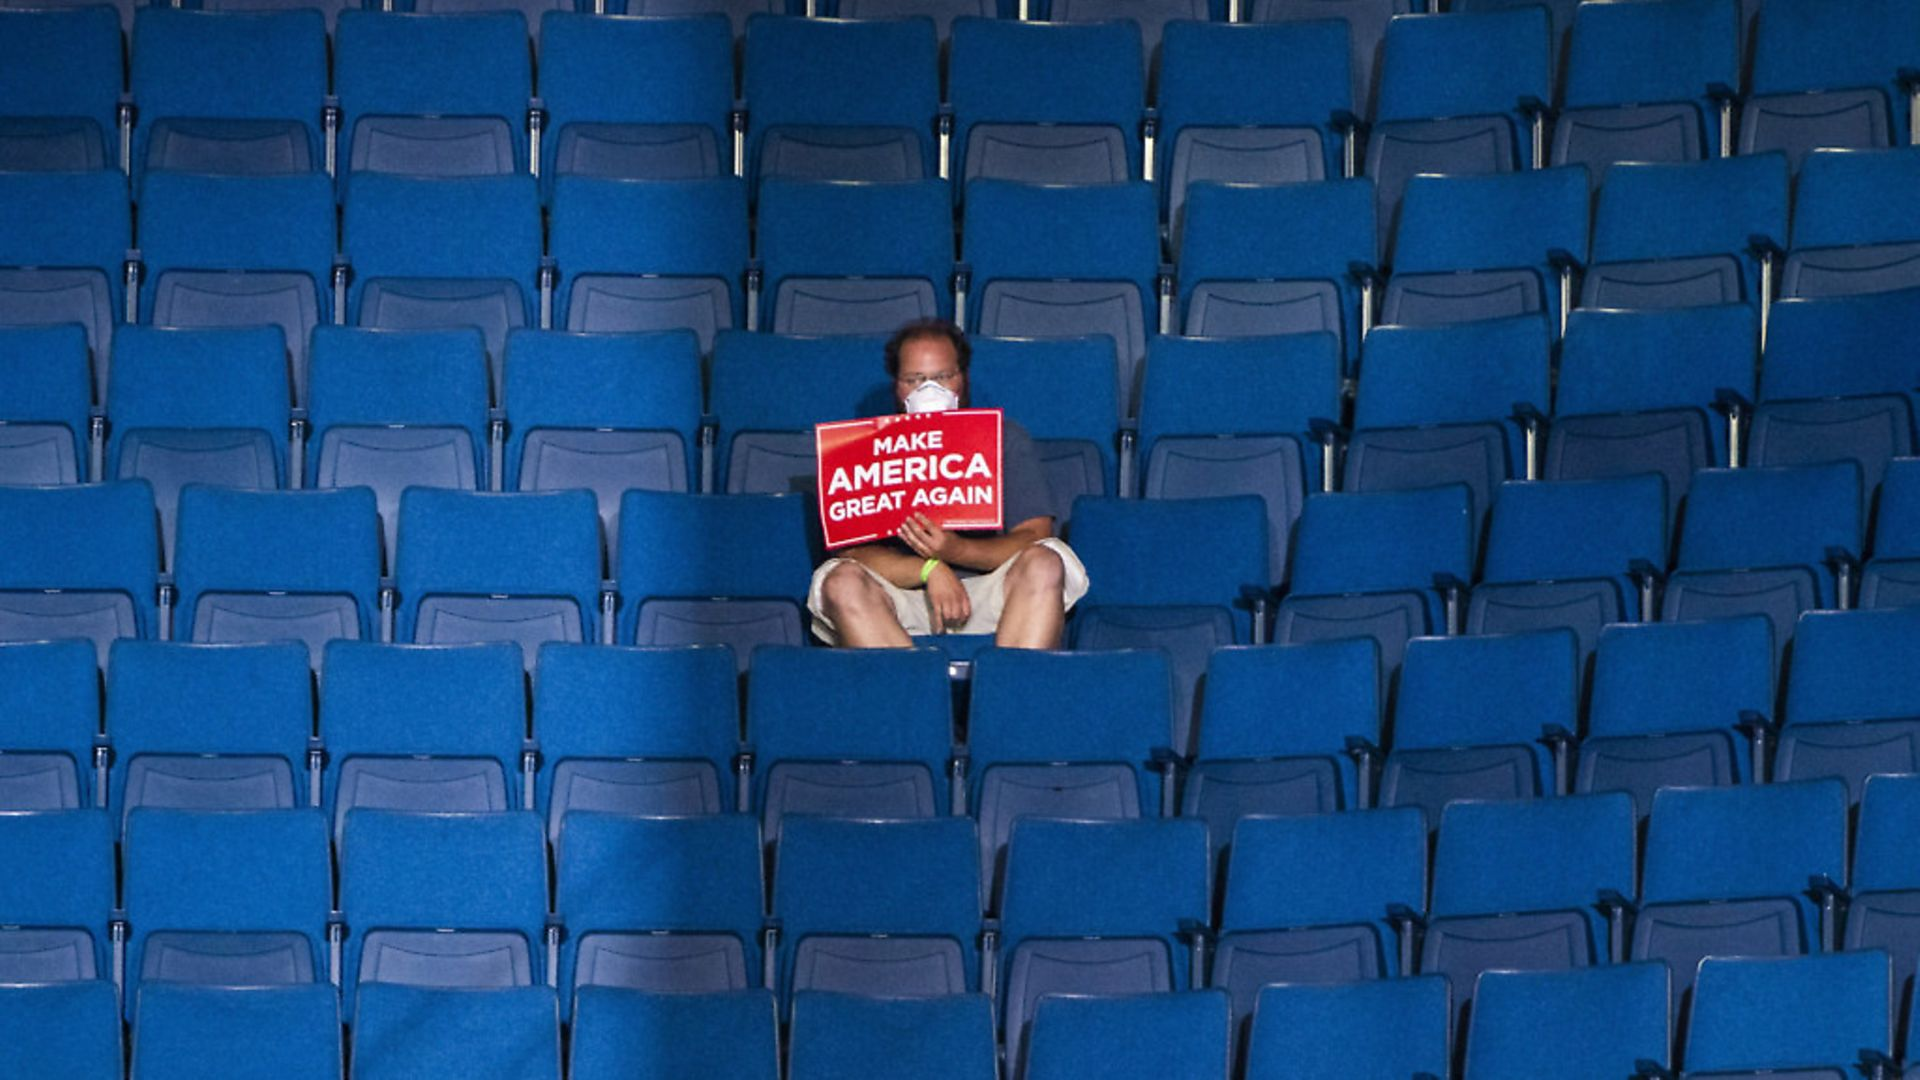 """TULSA, OK - JUNE 20: A supporter sits alone in the top sections of seating as Vice President Mike Pence speaks before President Donald J. Trump arrives for a """"Make America Great Again!"""" rally at the BOK Center on Saturday, June 20, 2020 in Tulsa, OK. (Photo by Jabin Botsford/The Washington Post via Getty Images) - Credit: The Washington Post via Getty Im"""